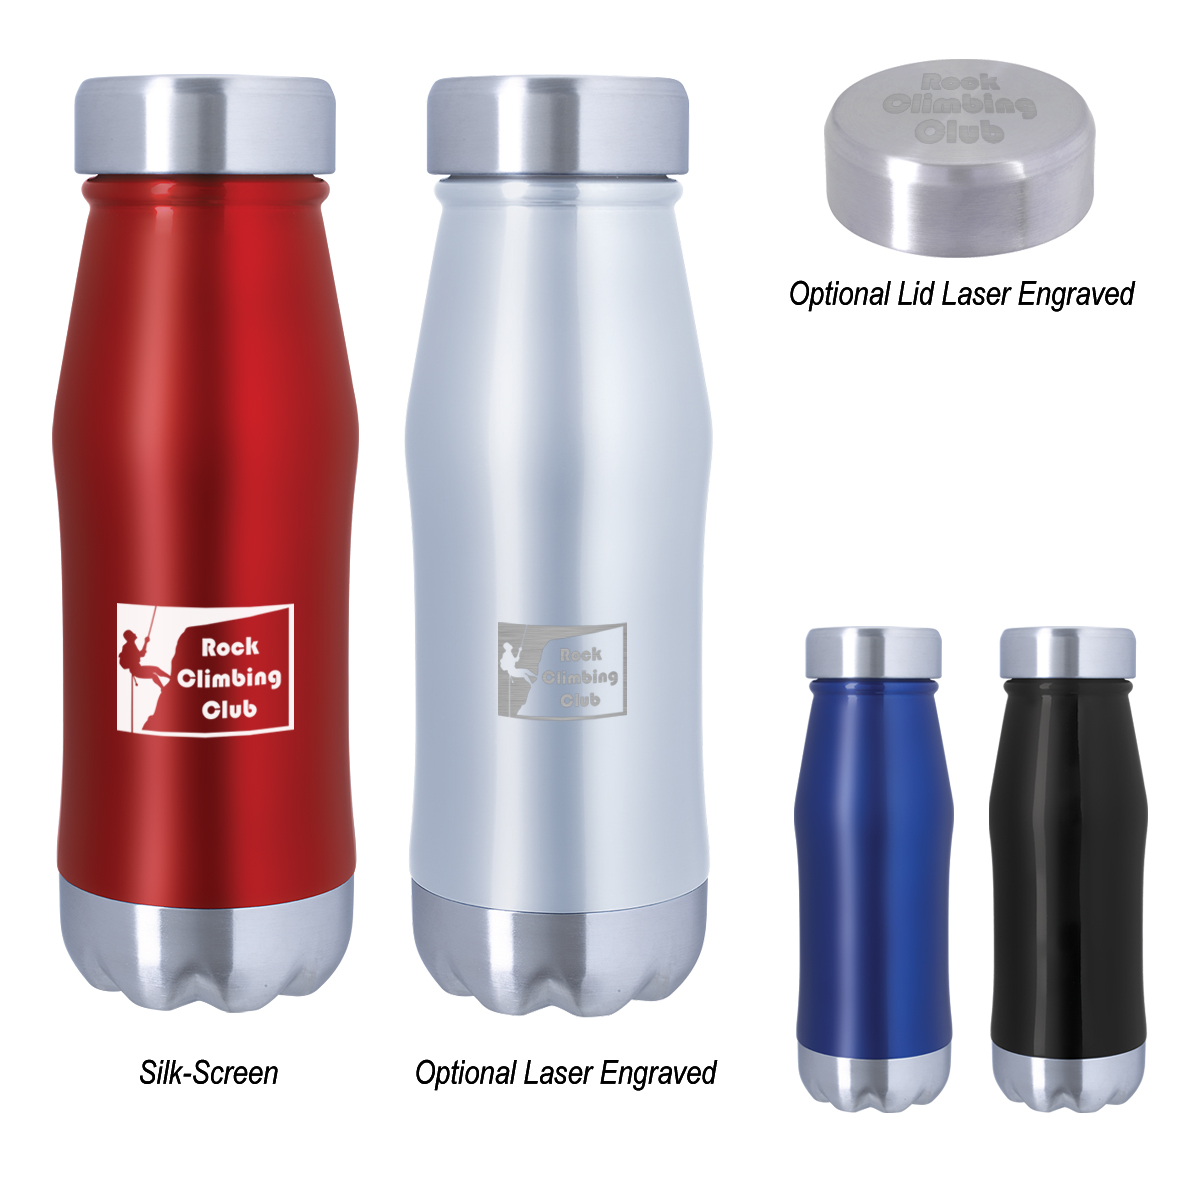 Hot up to 12 Hours Cold up to 24 Hours 16 oz Cassel Double-Wall Vacuum-Insulated Stainless Steel Bottle Spill-resistant Lid Wide Mouth Meets FDA Requirements BPA-free